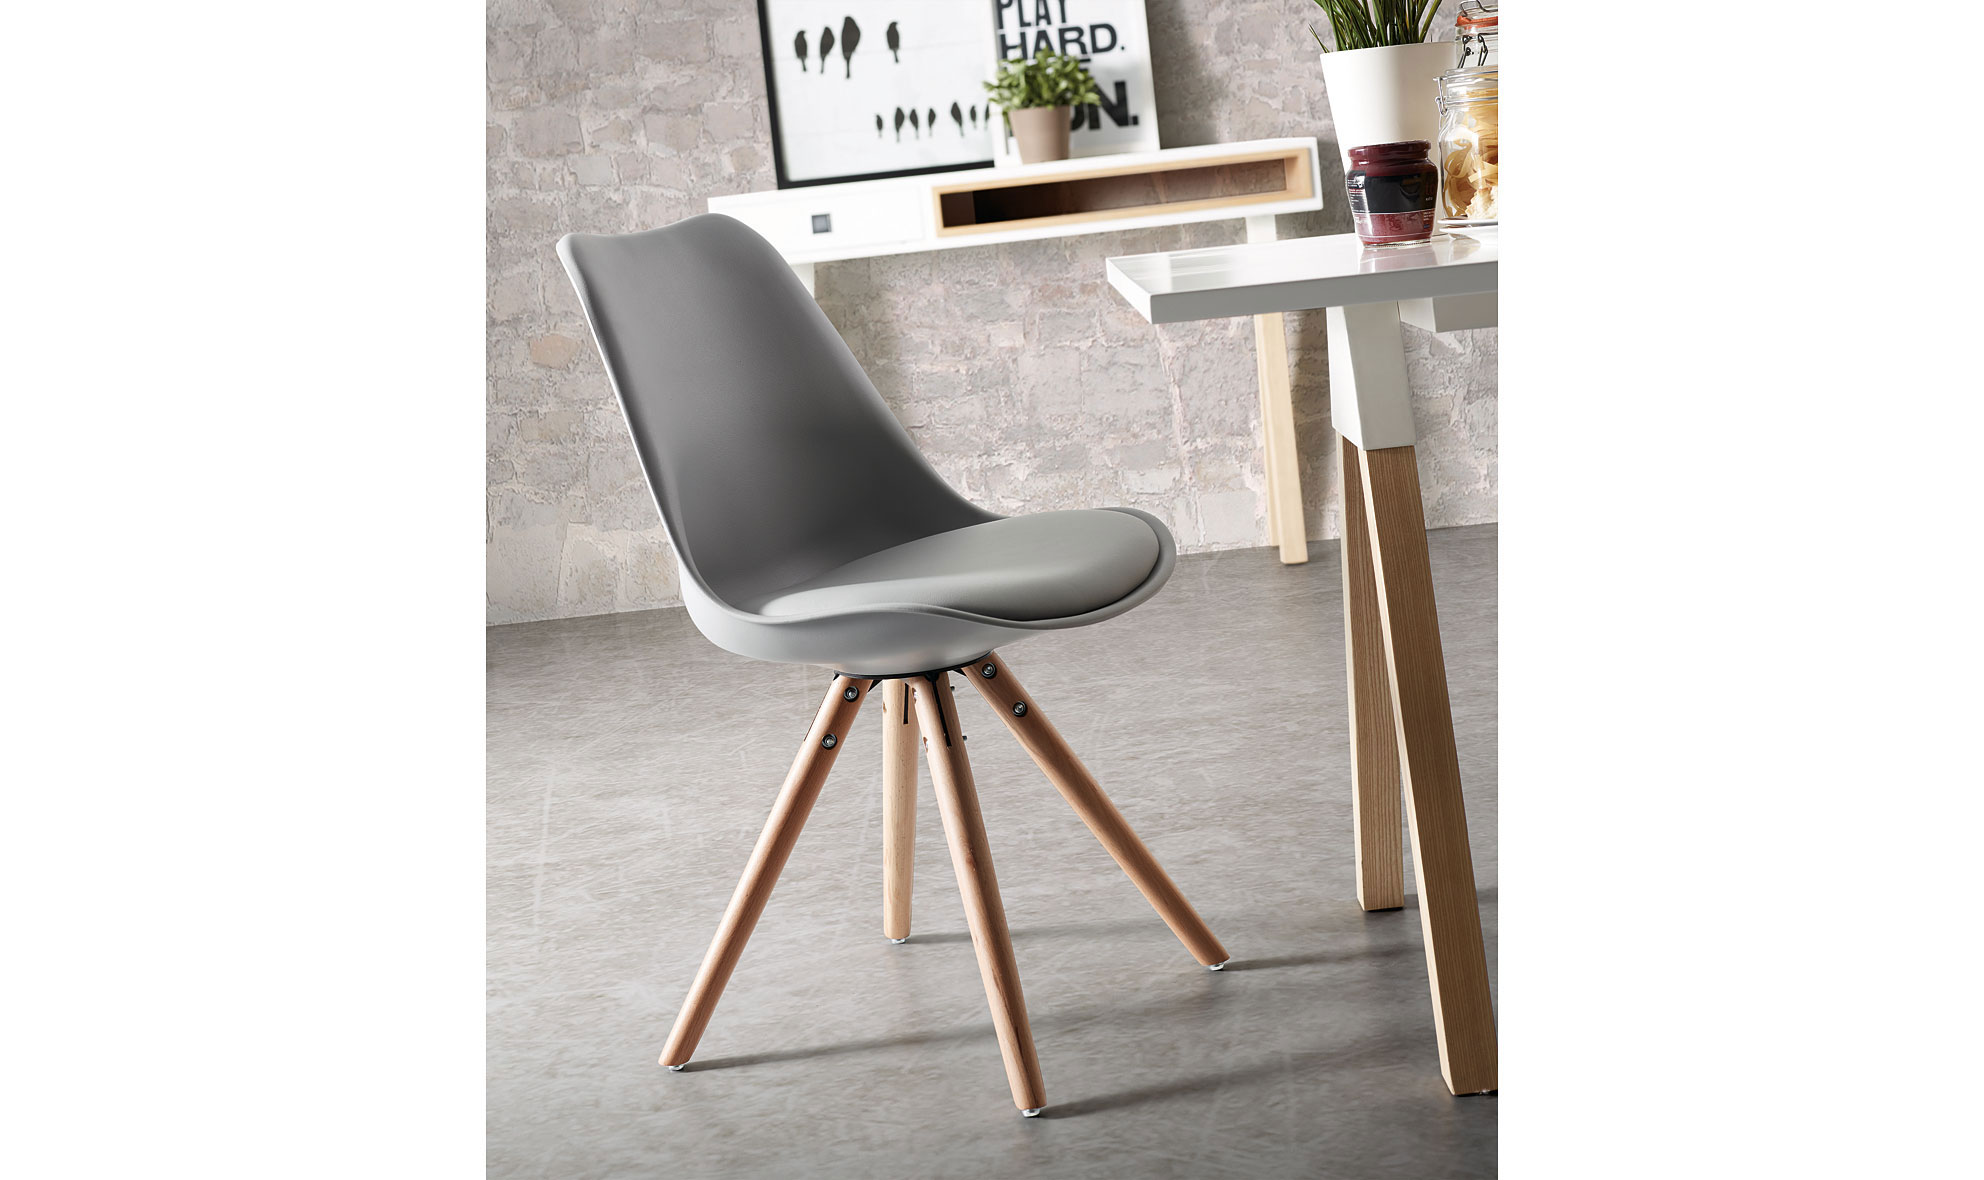 Silla gris moderna ralf en for Sillas de comedor color gris